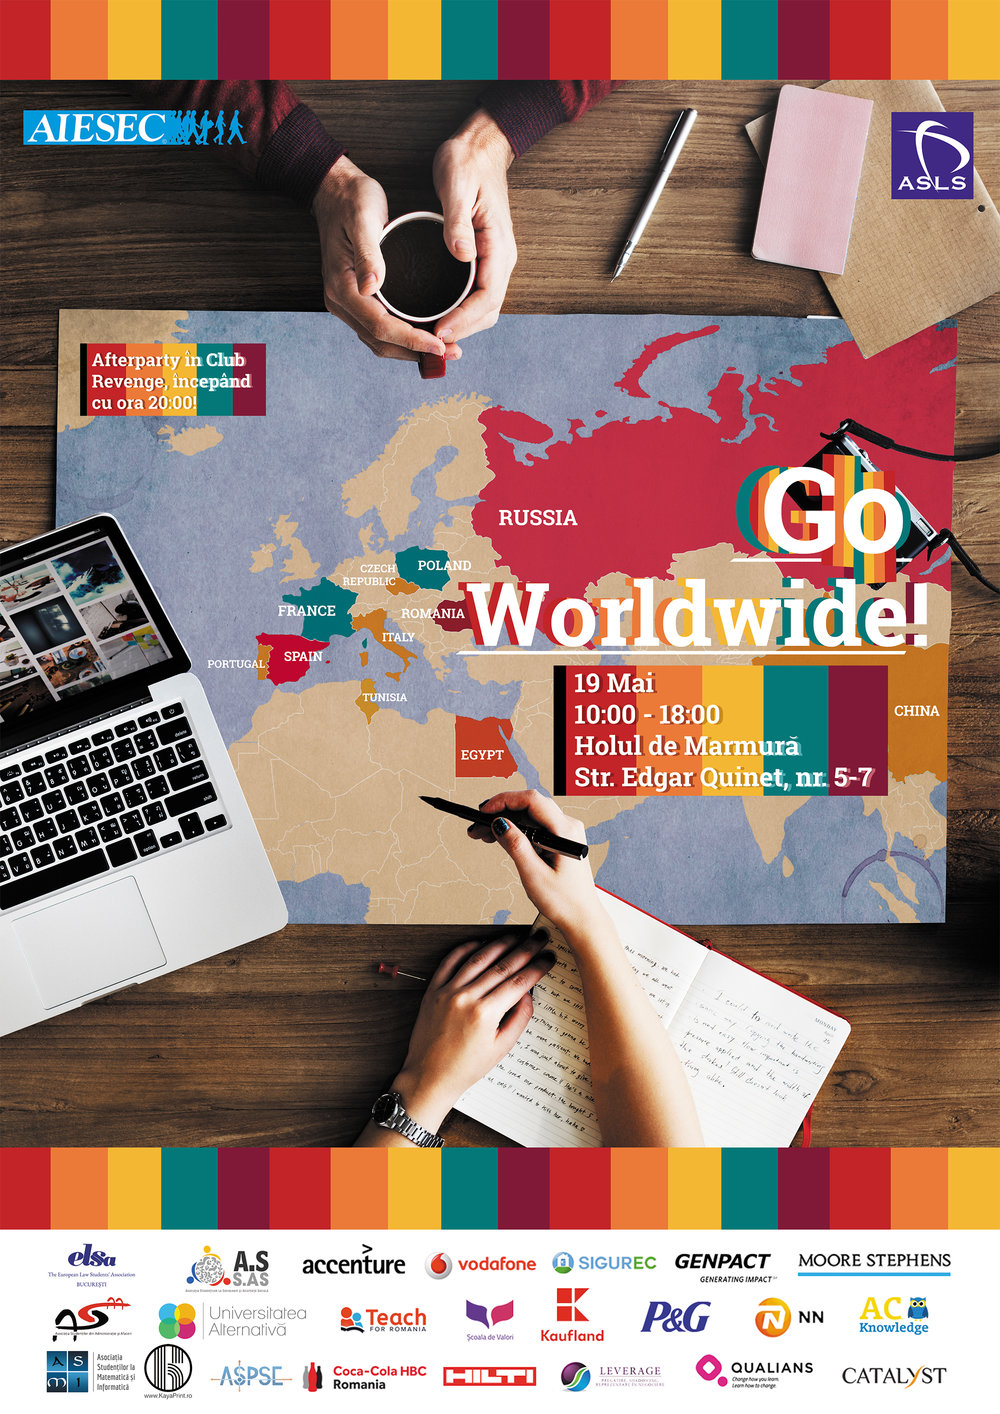 Go Worldwide — Travel the world in just one day